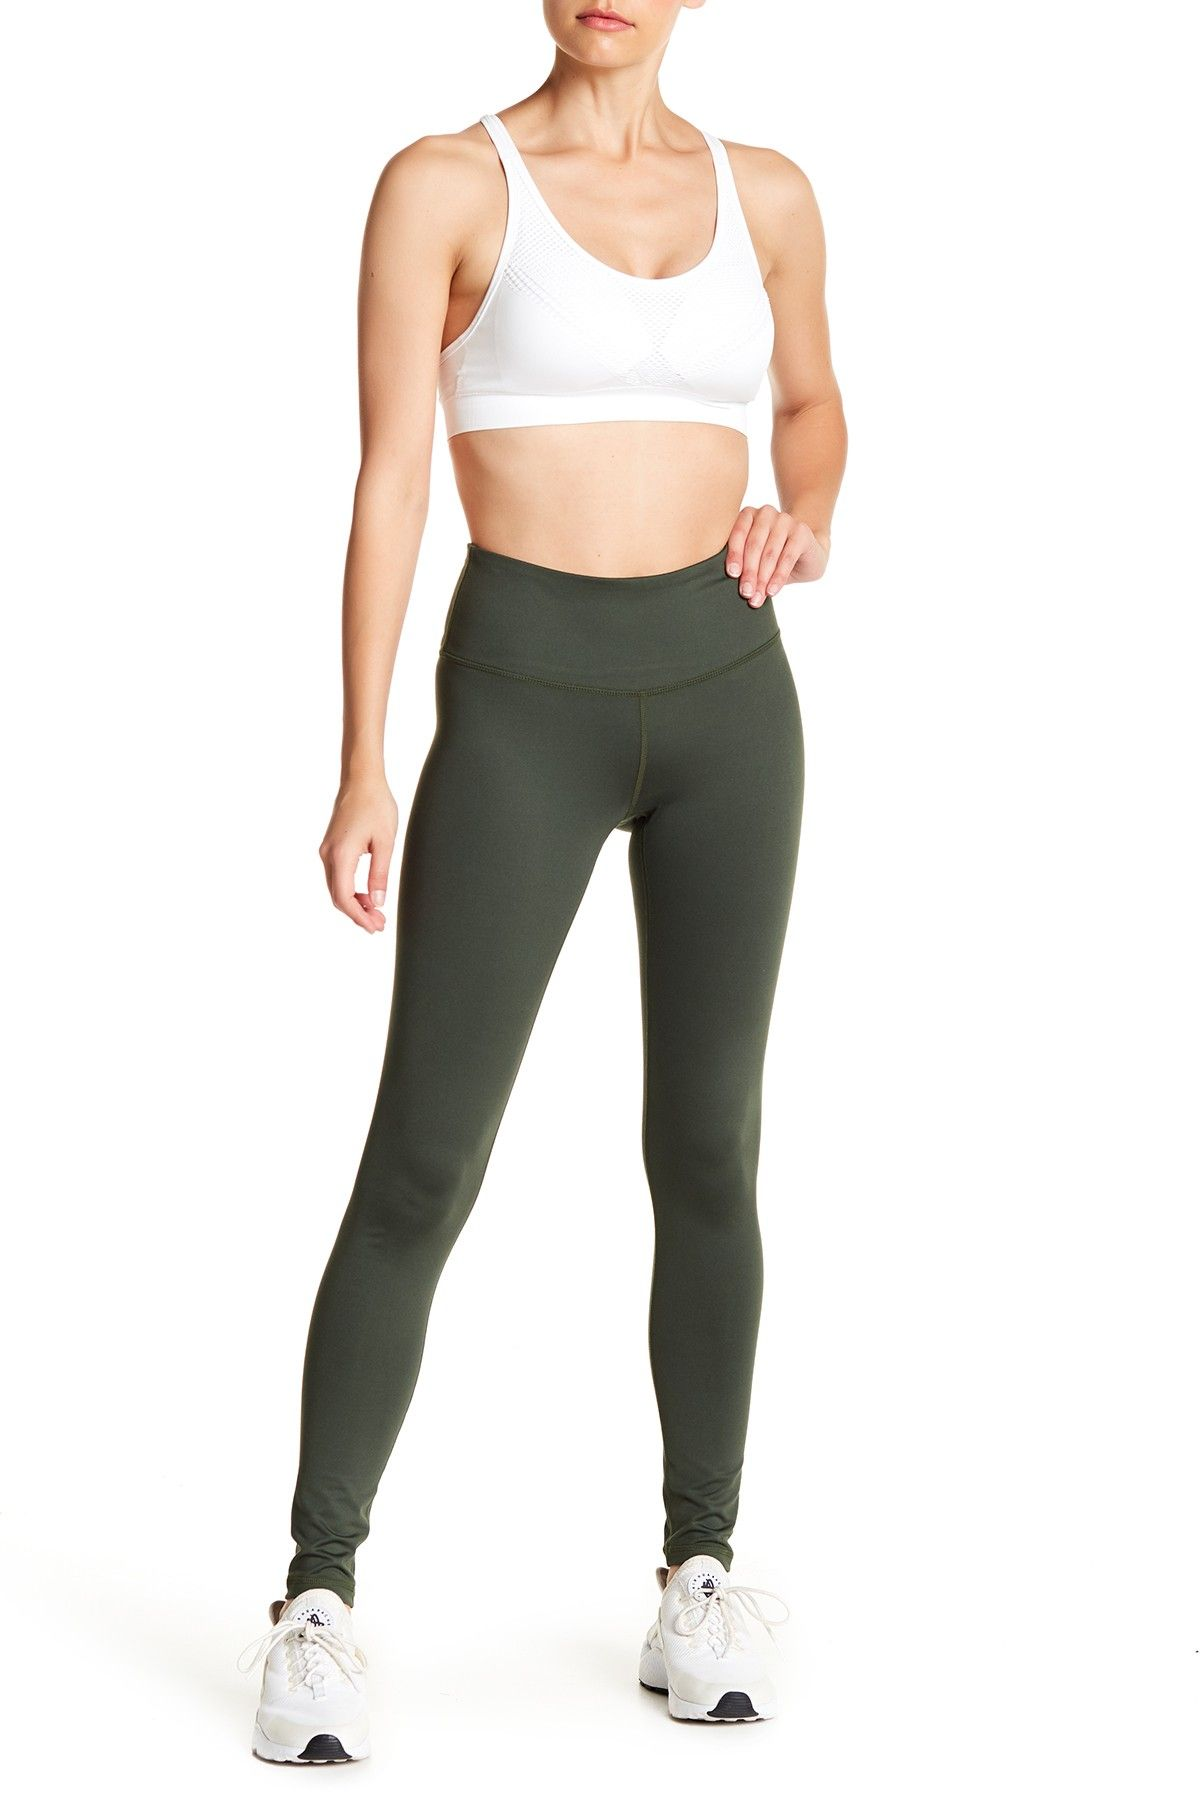 1d726d7f4be9a Z By Zella - High Waist Daily Leggings. Free Shipping on orders over $100.